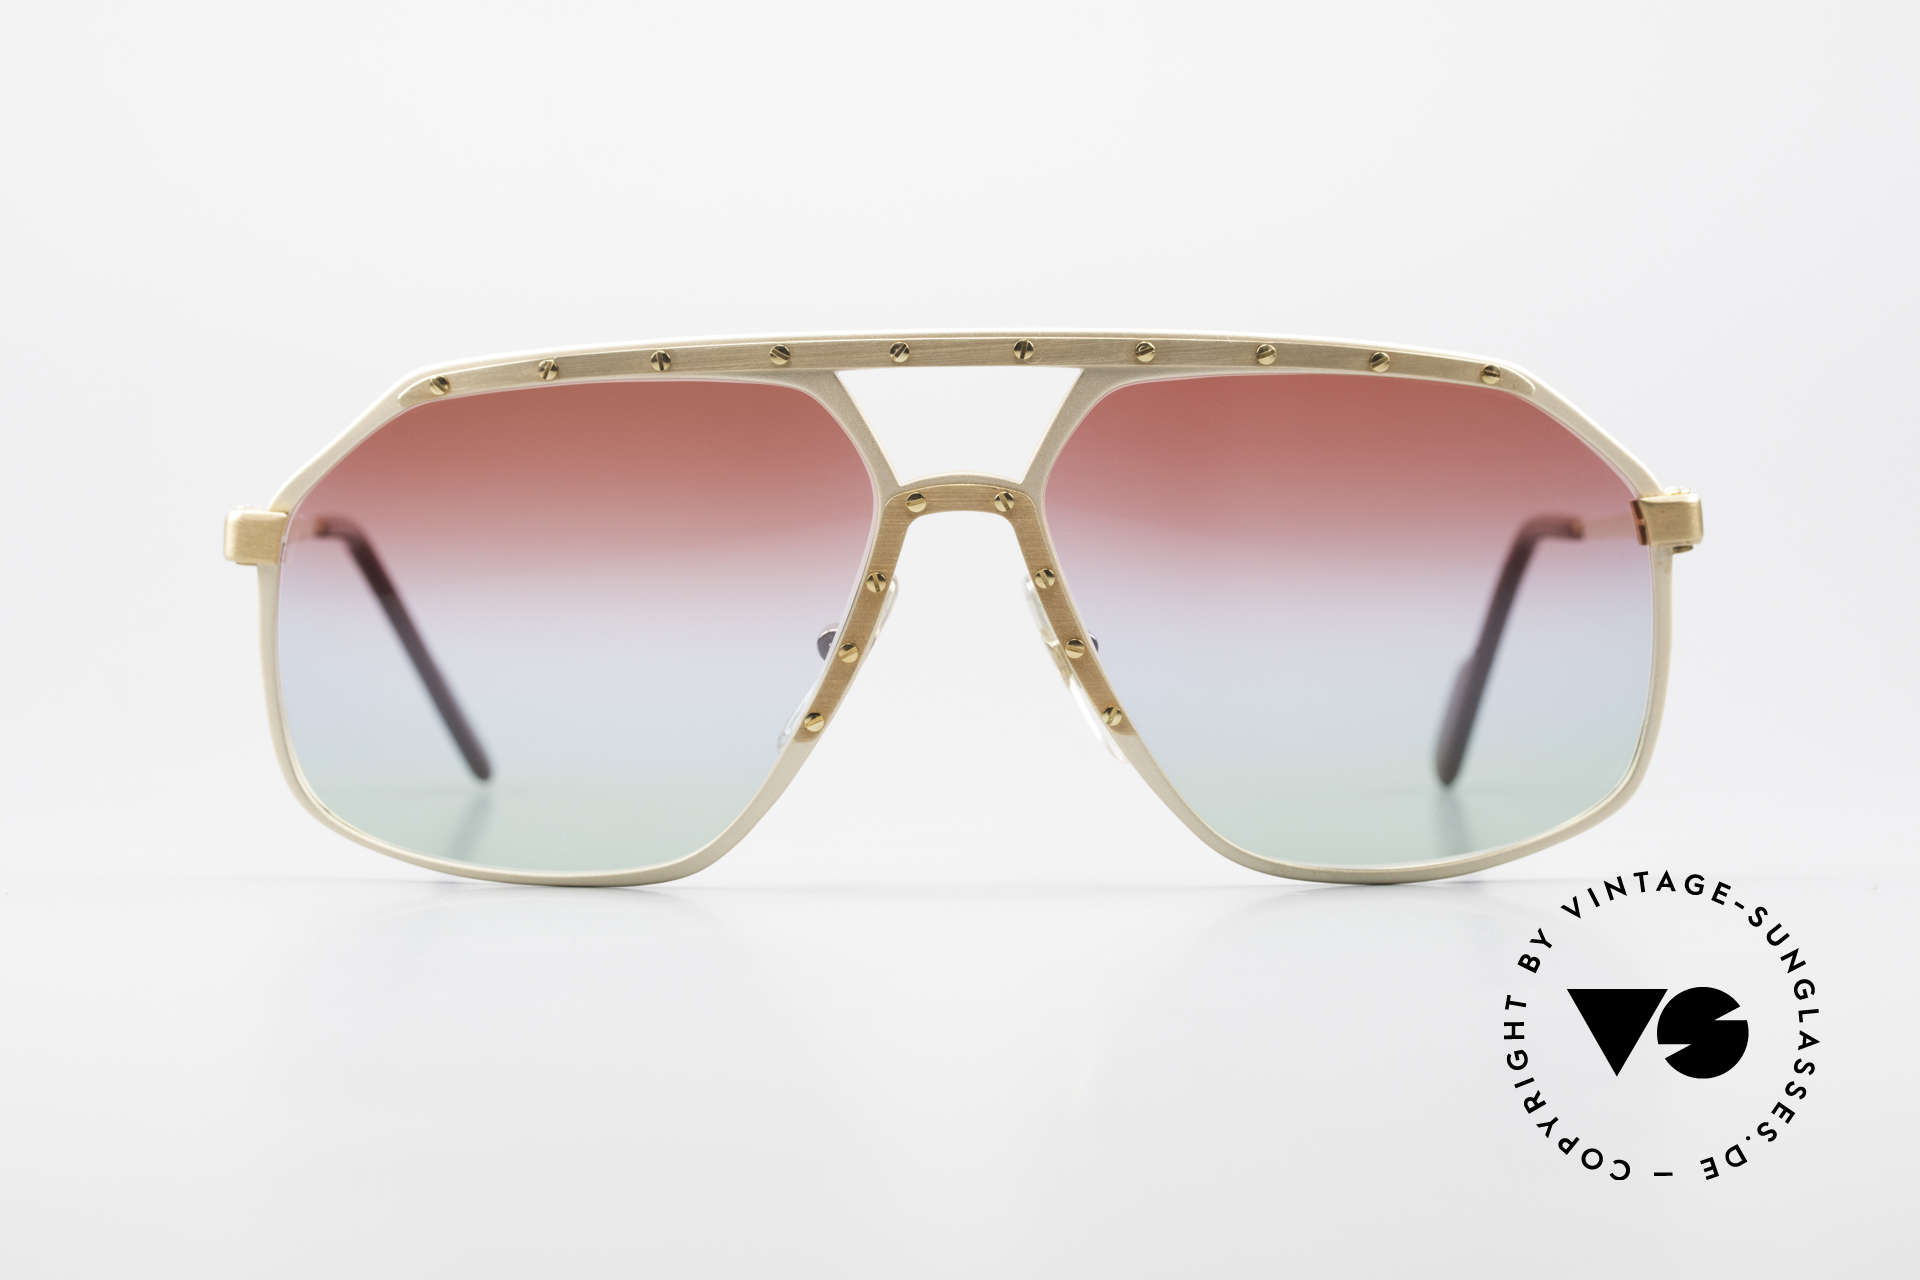 Alpina M6 West Germany Sunglasses 80's, a precious old 80's original in medium size 60-14, Made for Men and Women